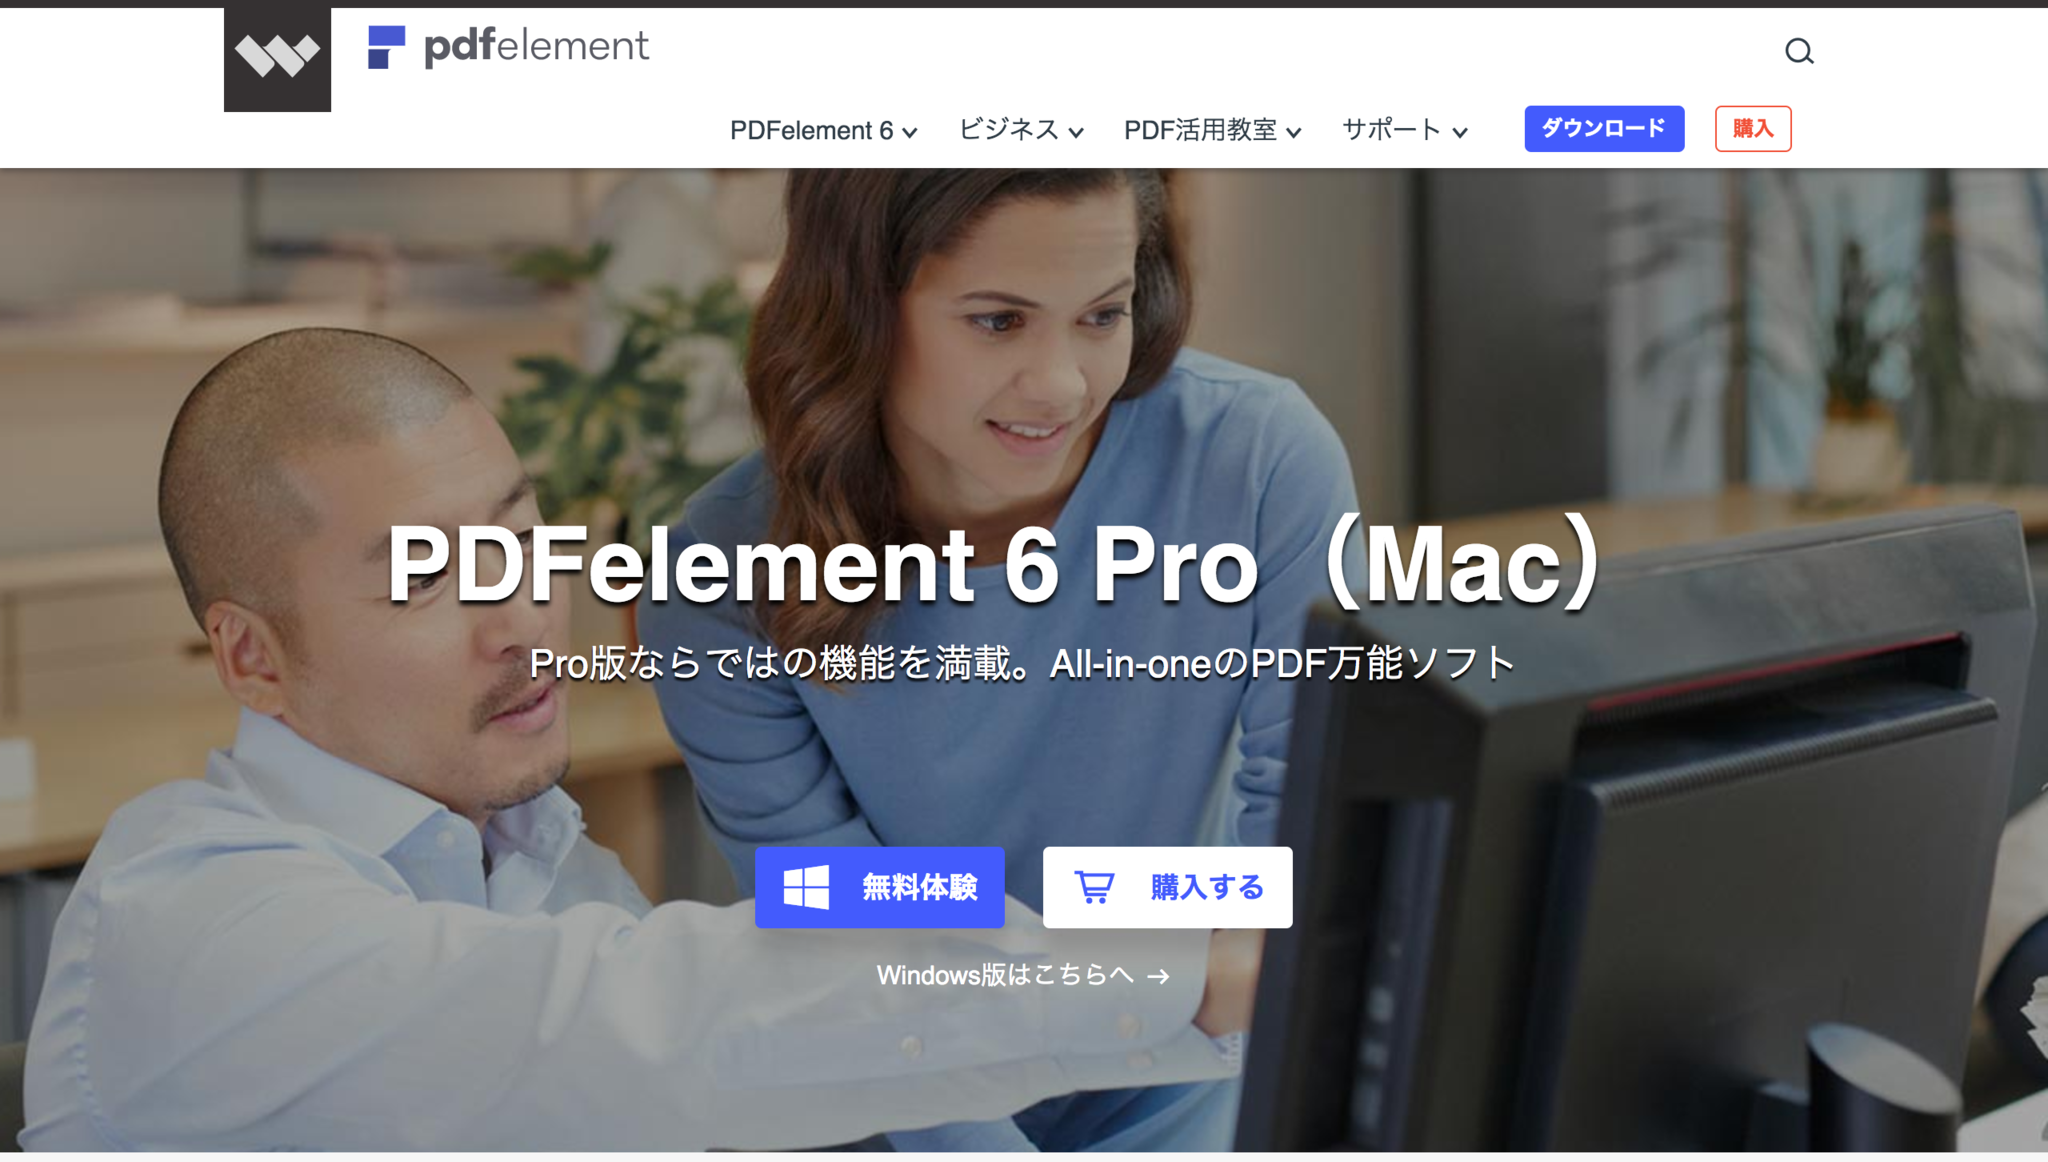 PDFelement_Pro(Mac)製品詳細___Wondershare_PDFelement.png